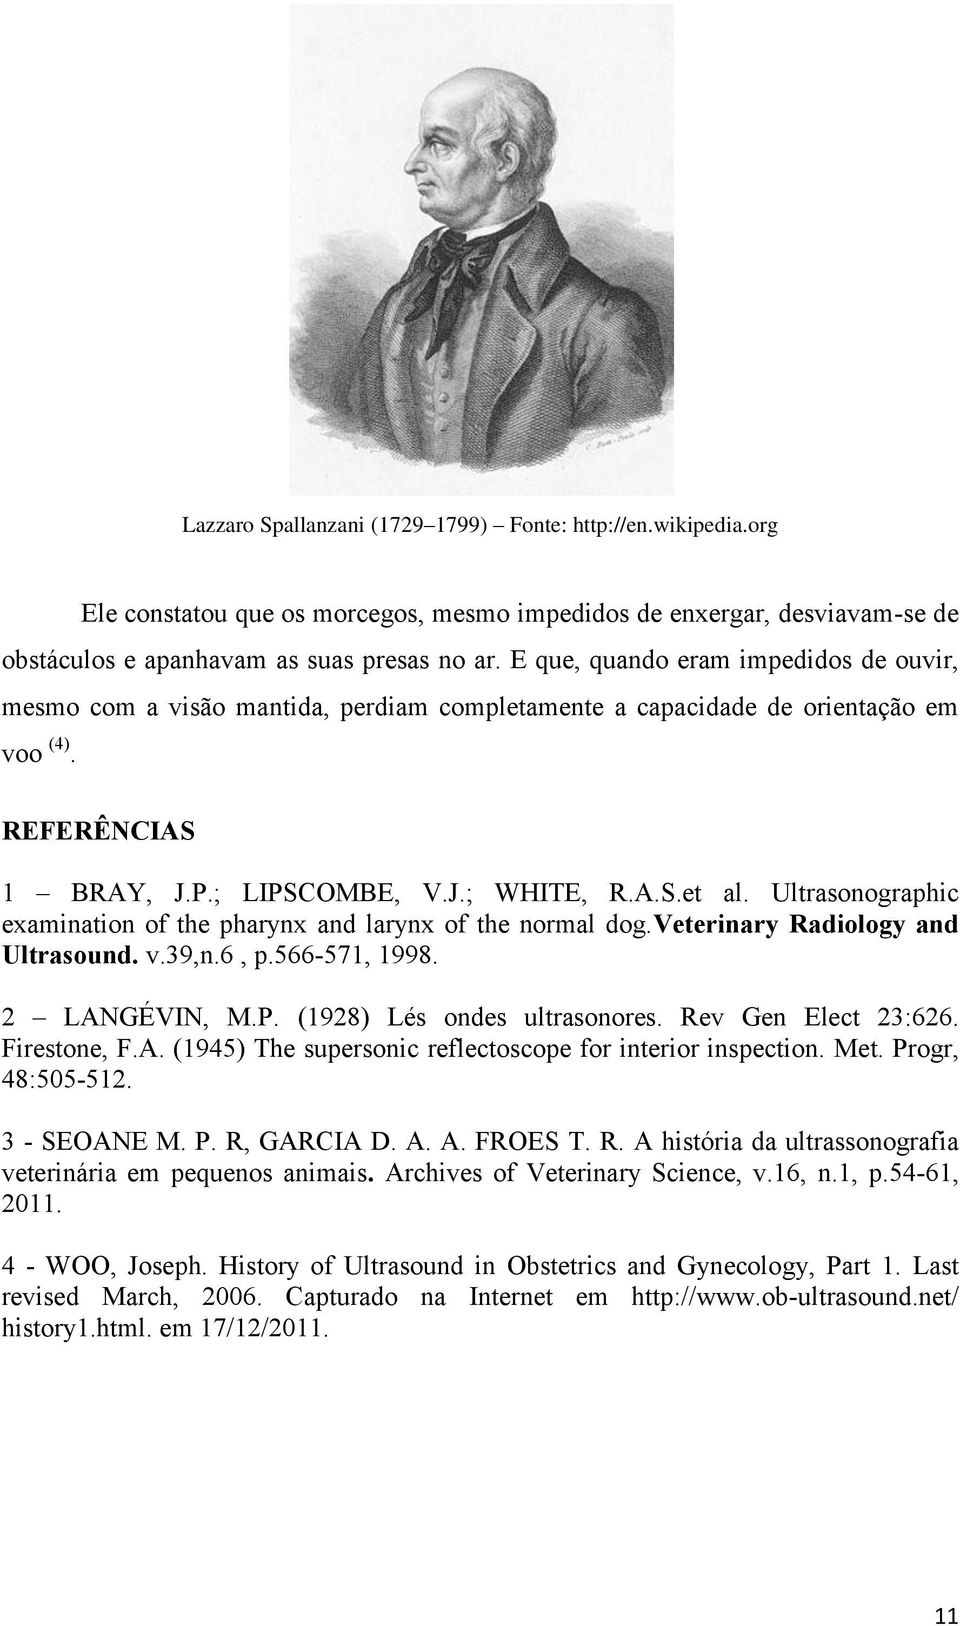 A histria da ultrassonografia no brasil pdf ultrasonographic examination of the pharynx and larynx of the normal dogterinary radiology and ultrasound fandeluxe Images